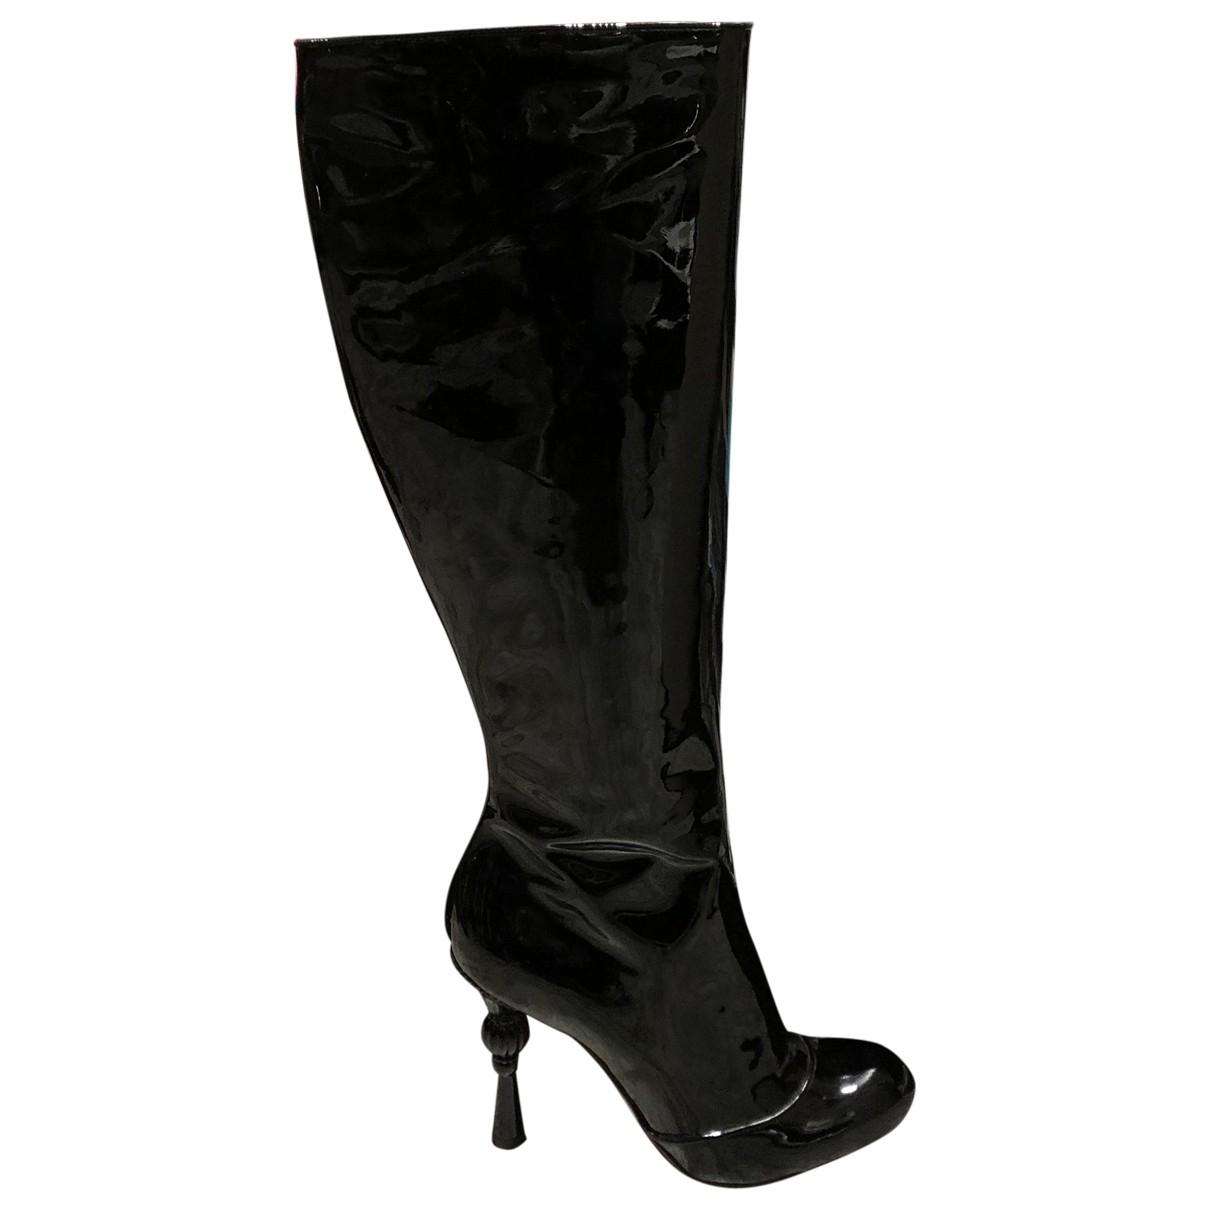 Dolce & Gabbana \N Black Patent leather Boots for Women 40 EU